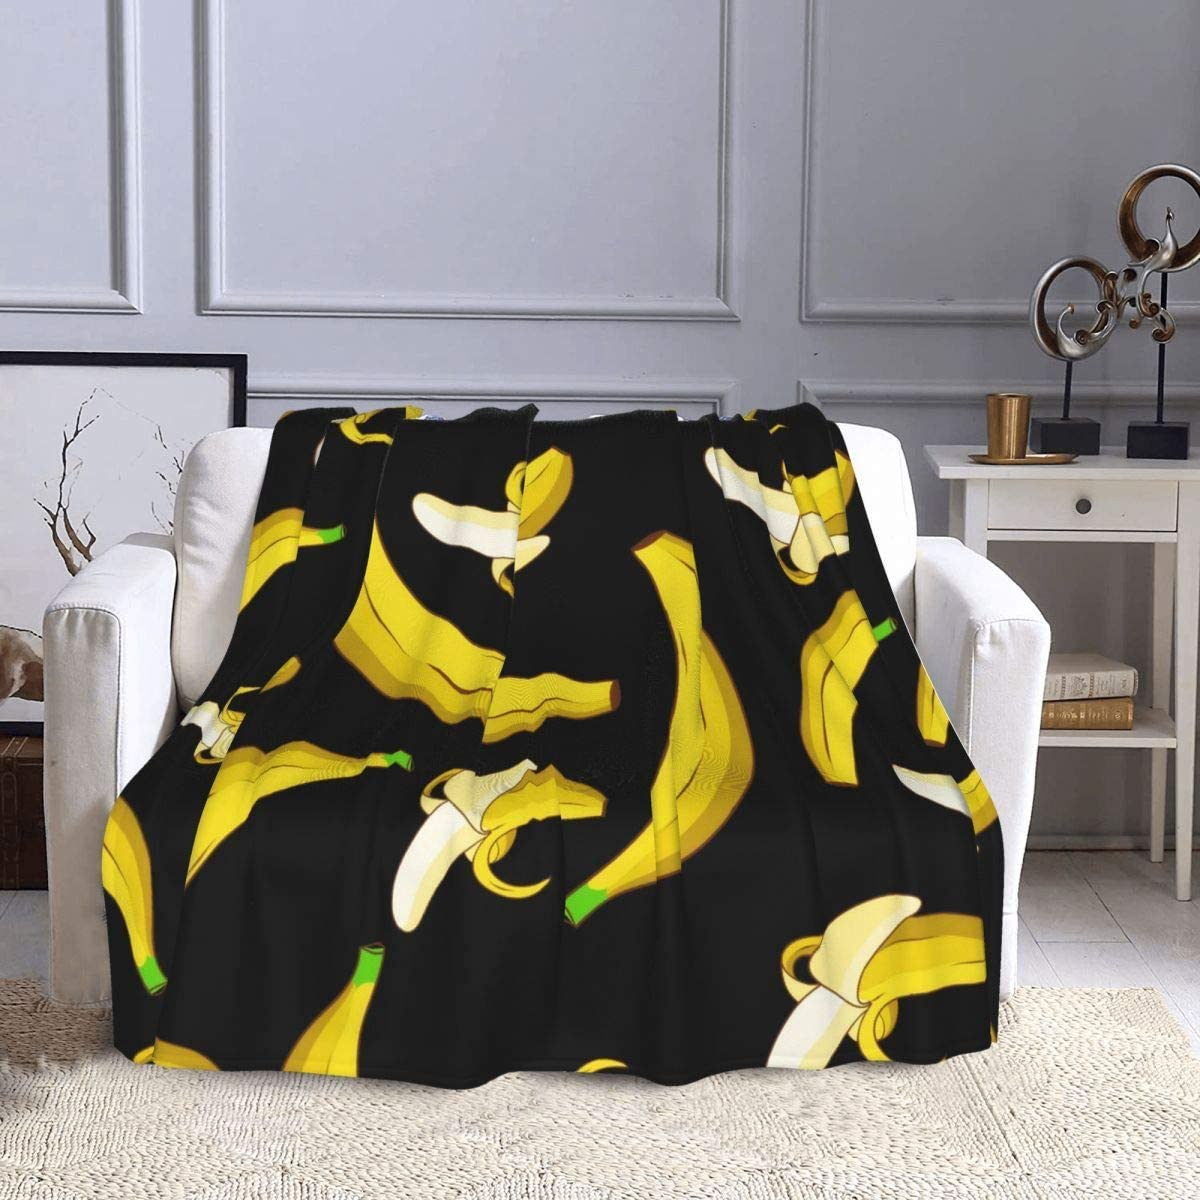 D-WOLVES Saba Banana Throw Blanket Tulsa Mall We OFFer at cheap prices Sofa for and Blankets Couch